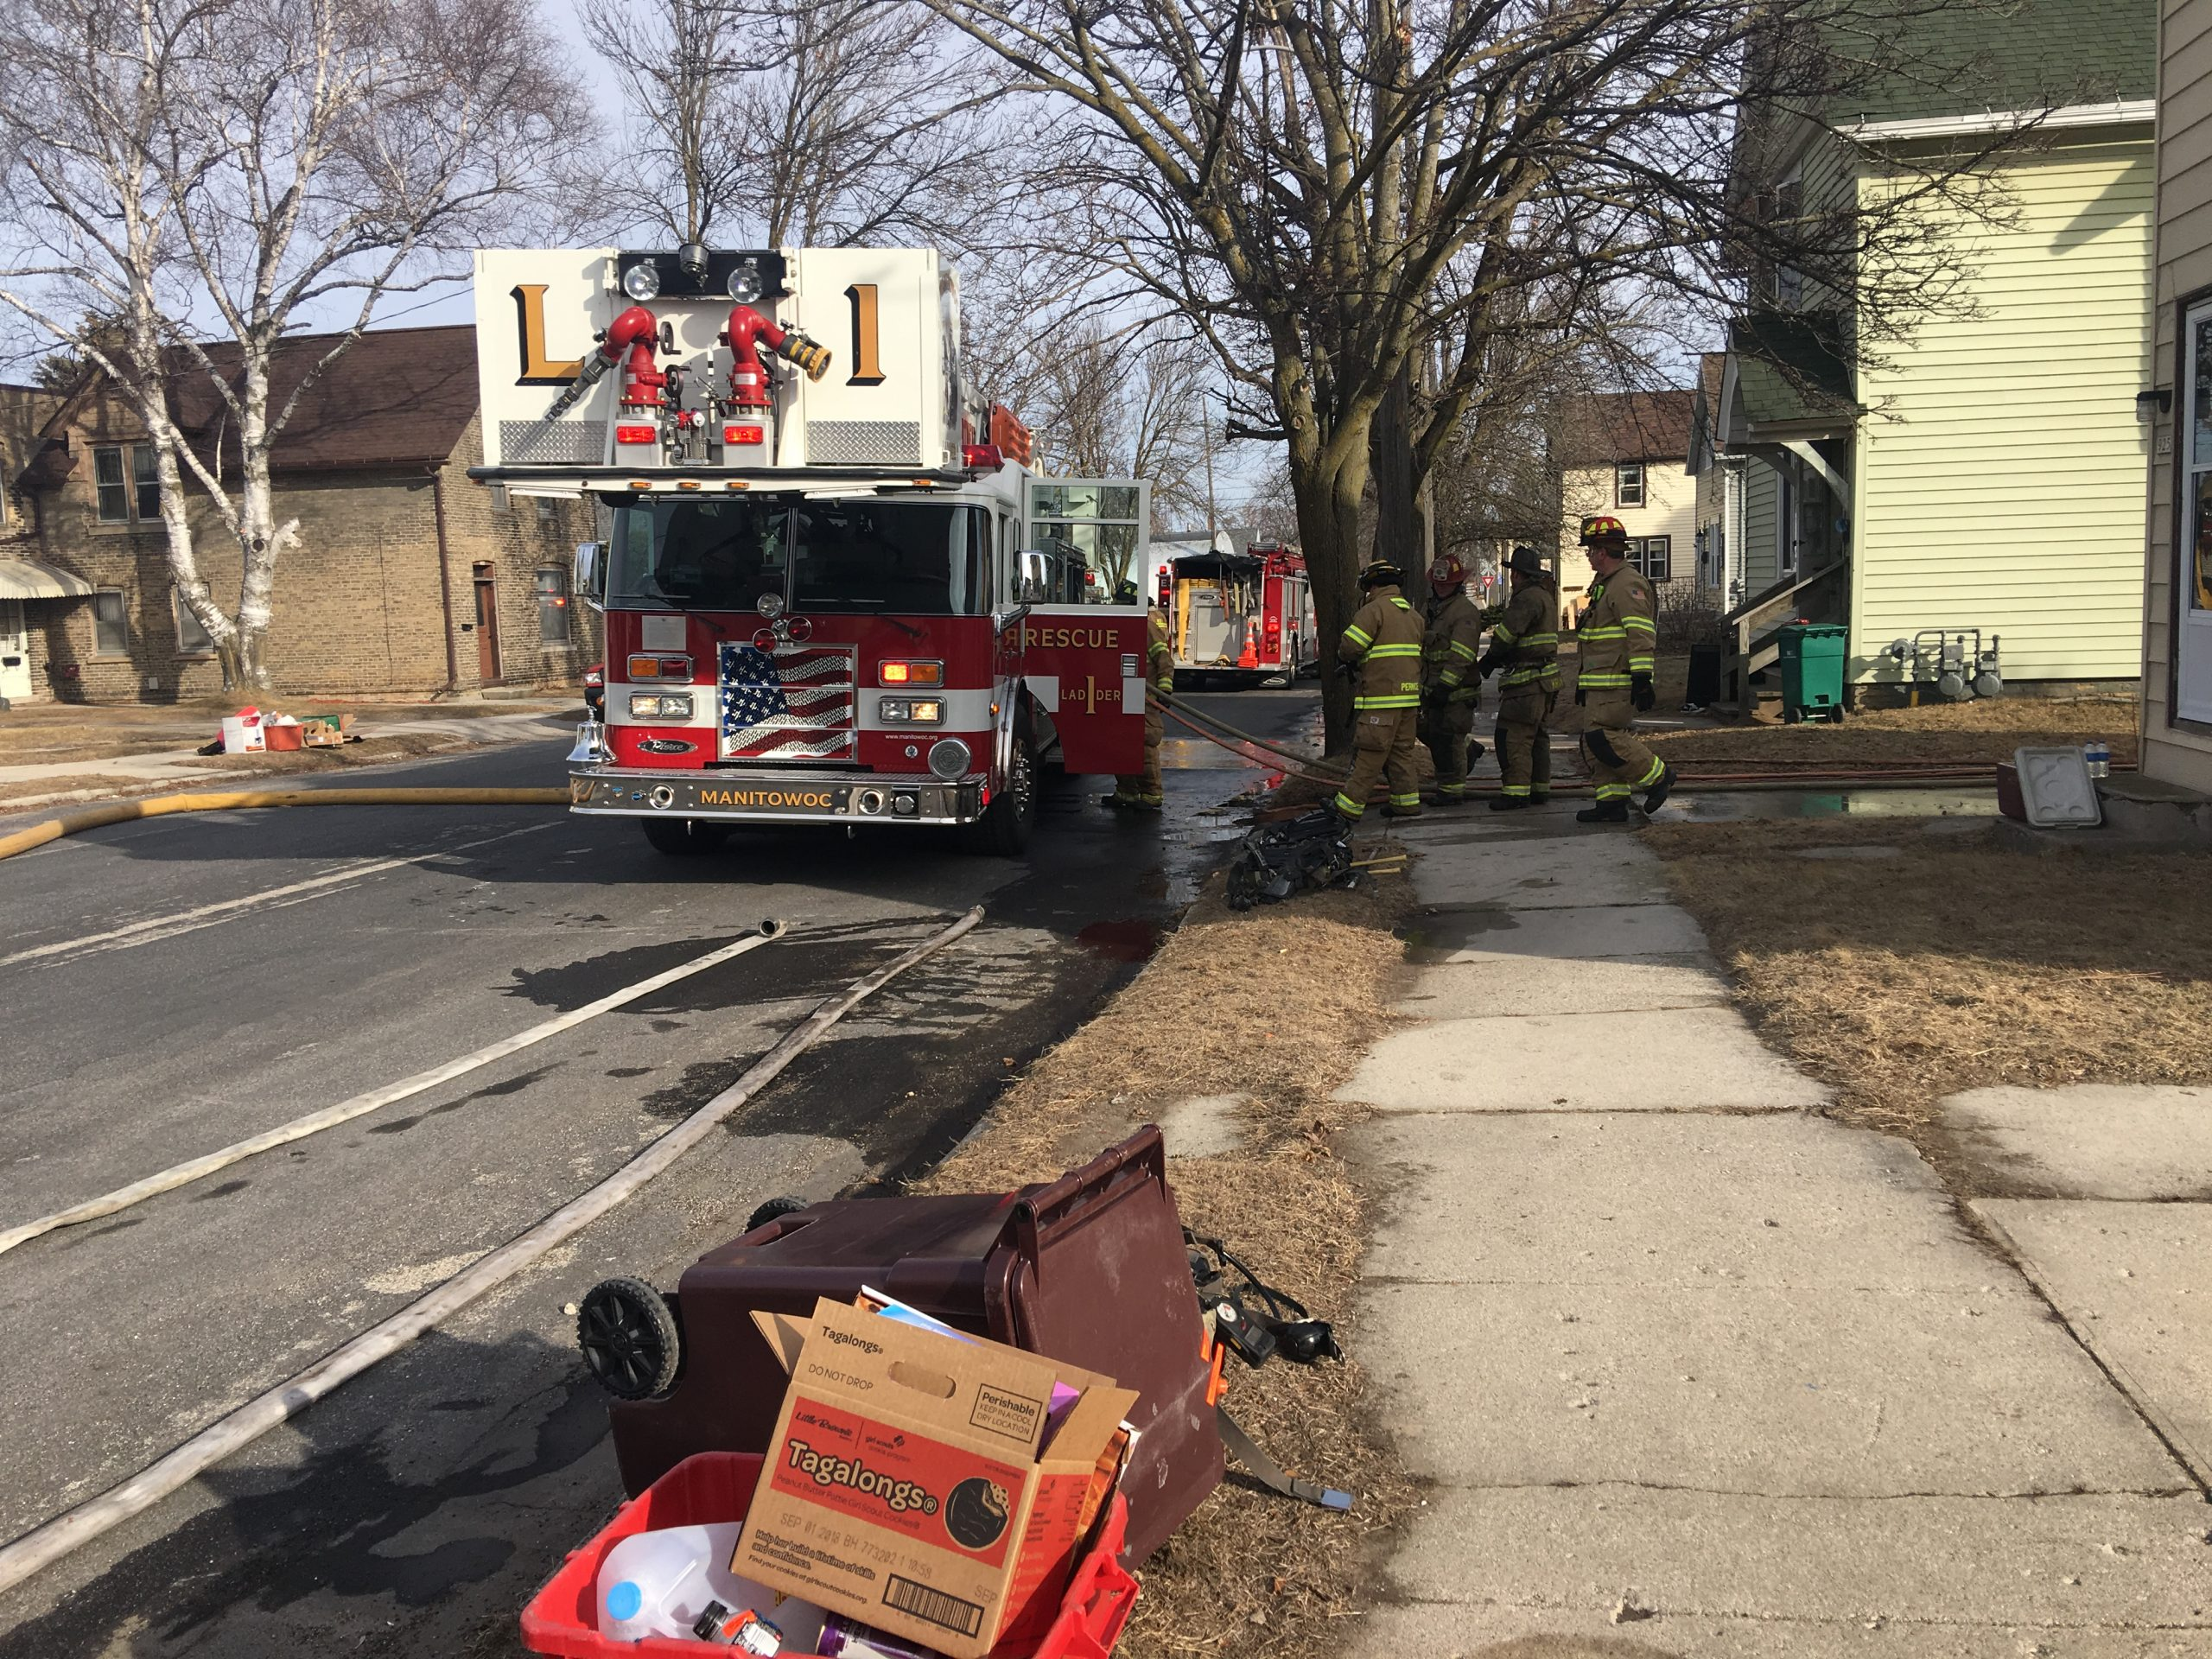 Fire on South 18th Street in Manitowoc *UPDATED*